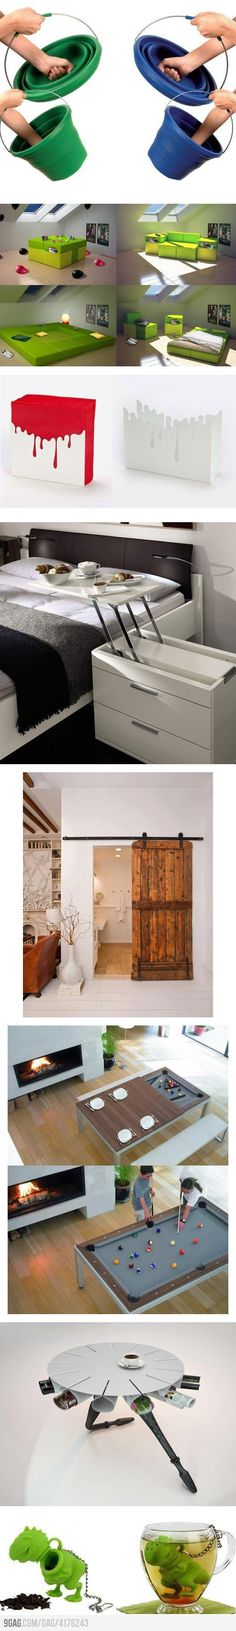 Cool stuff you will want for your home. I want that awesome door and the bedside table.